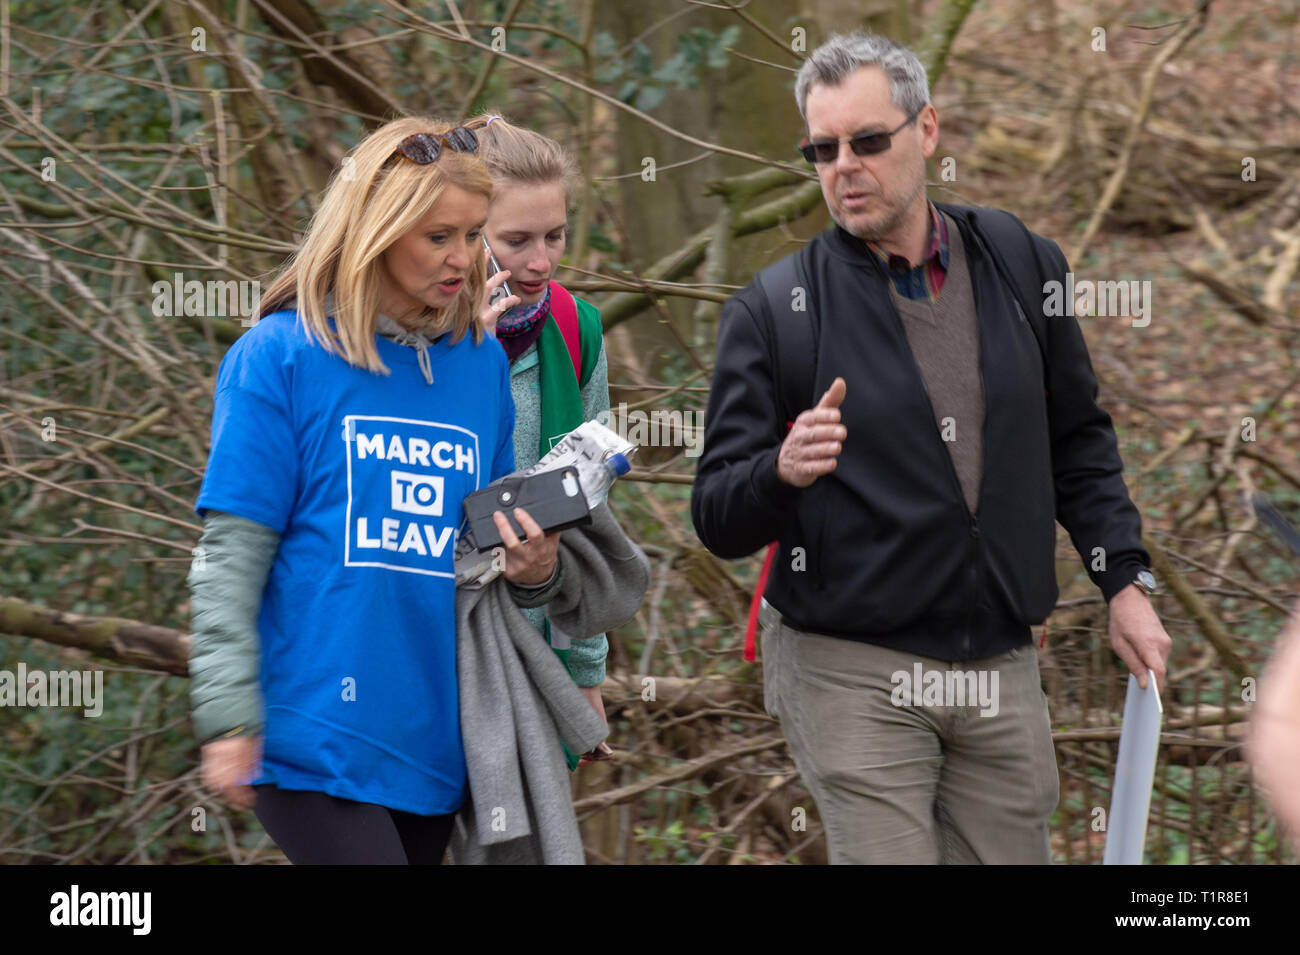 Buckinghamshire, United Kingdom. 28 March 2019. The pro Brexit campaign 'March for Leave' makes it way through Buckinghamshire after setting off from Aylesbury led by Leave Means Leave chairman John Longworth. PICTURED: Esther McVey MP in WEndover. Credit: Peter Manning/Alamy Live News Stock Photo